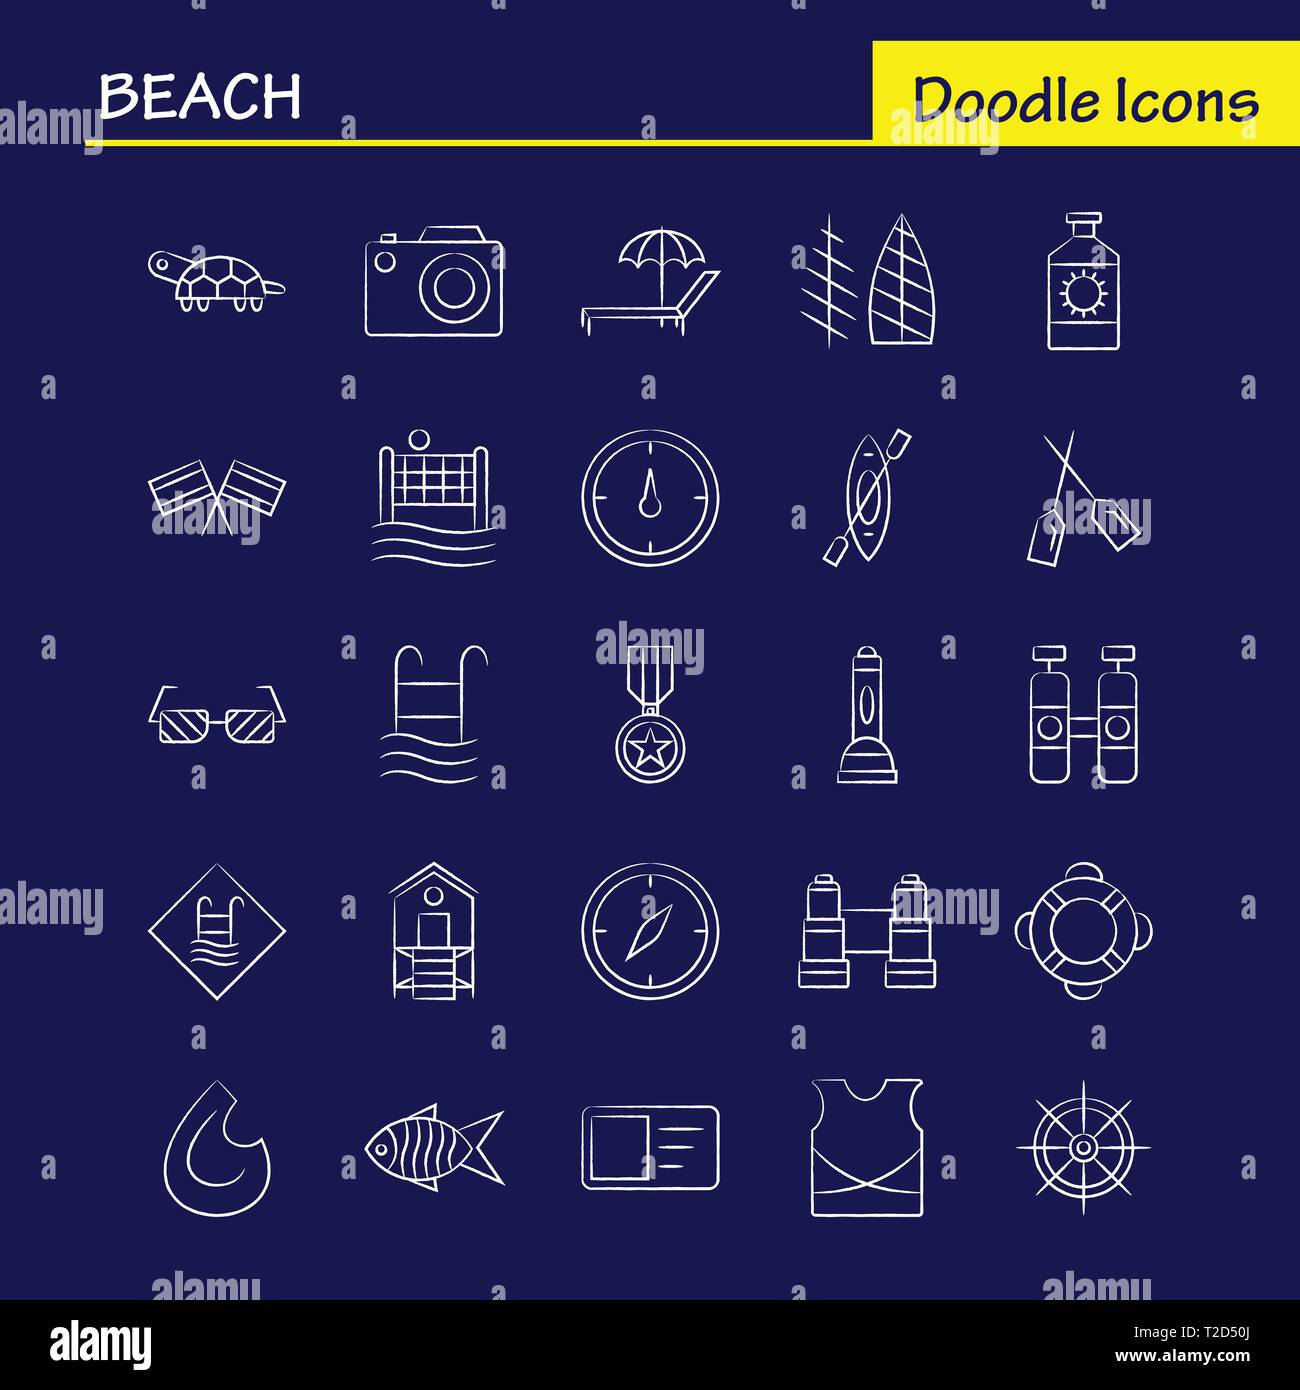 Beach Hand Drawn Icon for Web, Print and Mobile UX/UI Kit. Such as: Protein, Bottle, Drink, Sport, Beach, Net, Sports, Volley, Pictogram Pack. - Vecto - Stock Vector